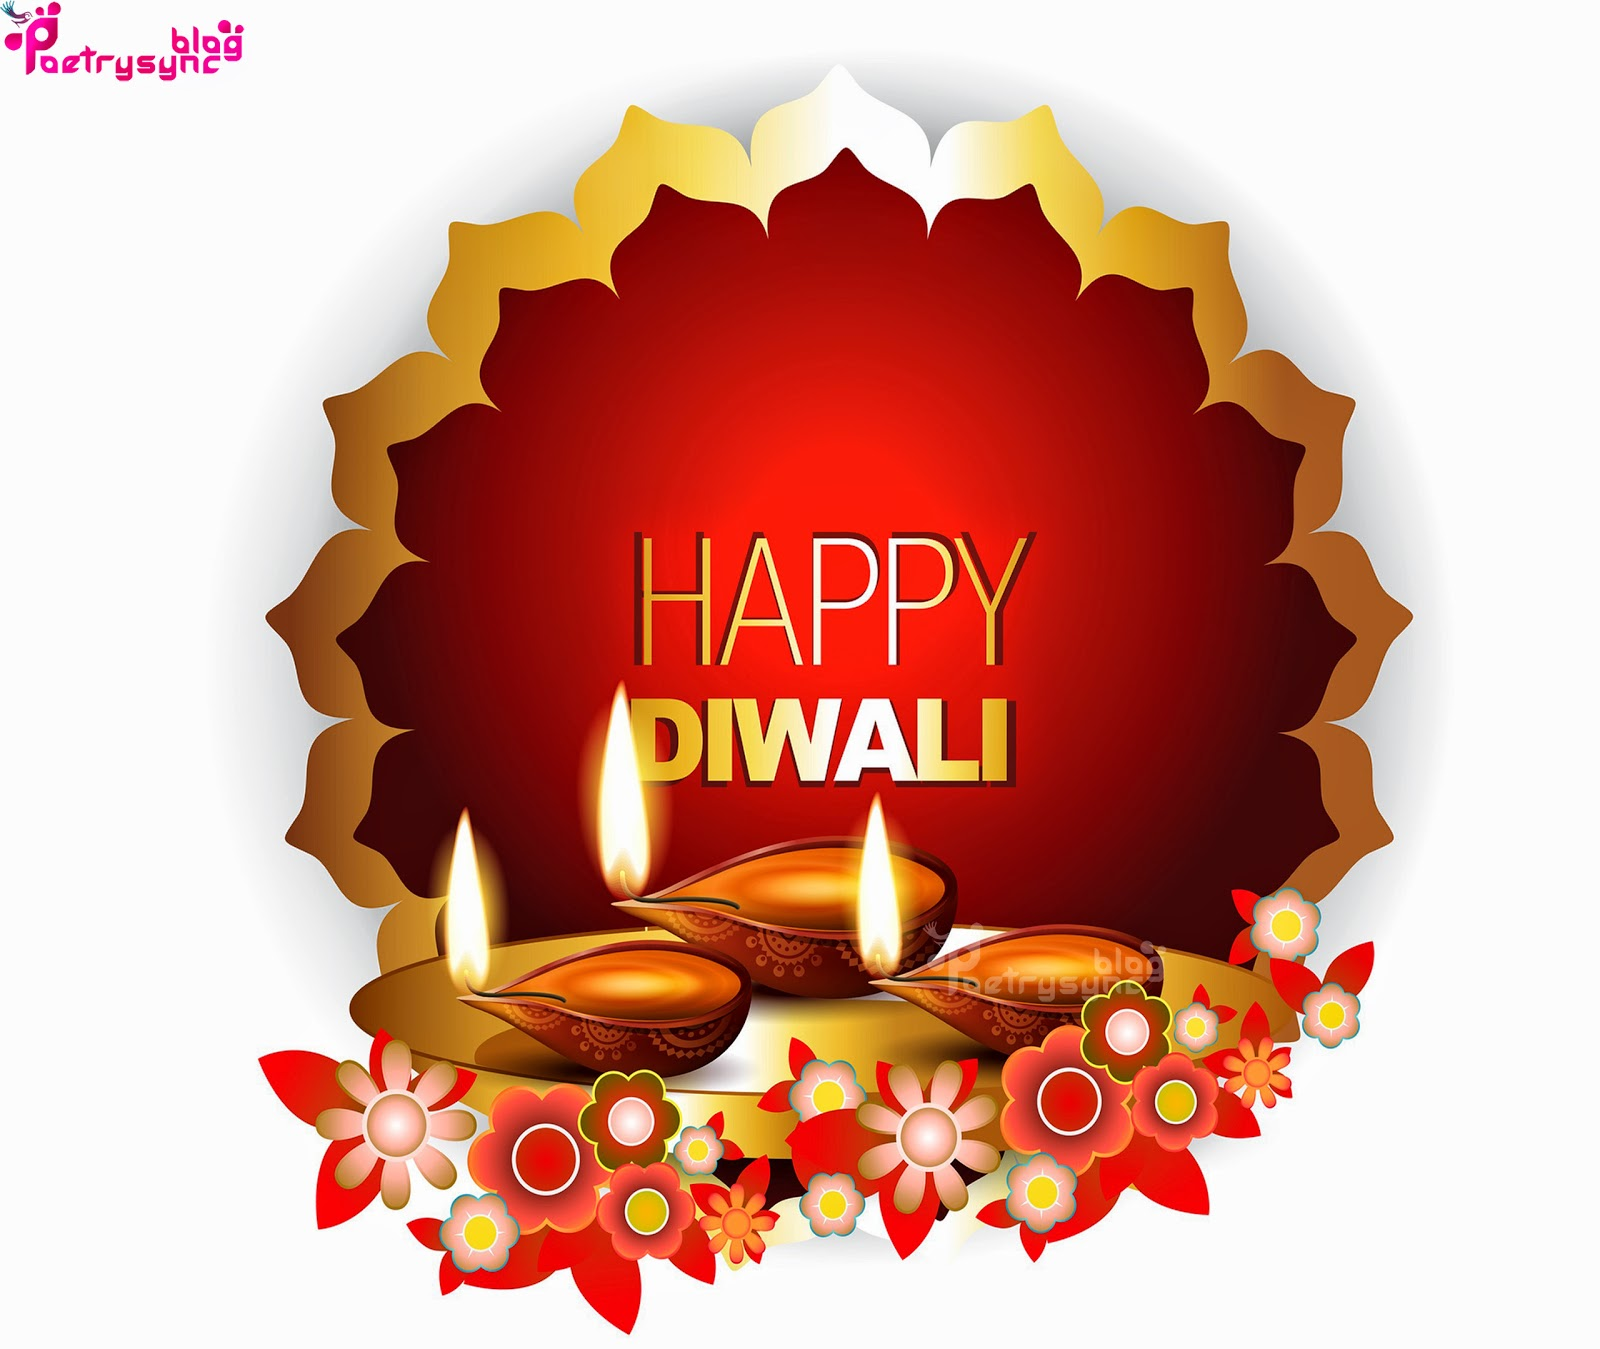 information on diwali in english Happy diwali 2017, diwali essay in english for kids, diwali speech in hindi for students, diwali paragraph in marathi for children, diwali sentences in bengali.